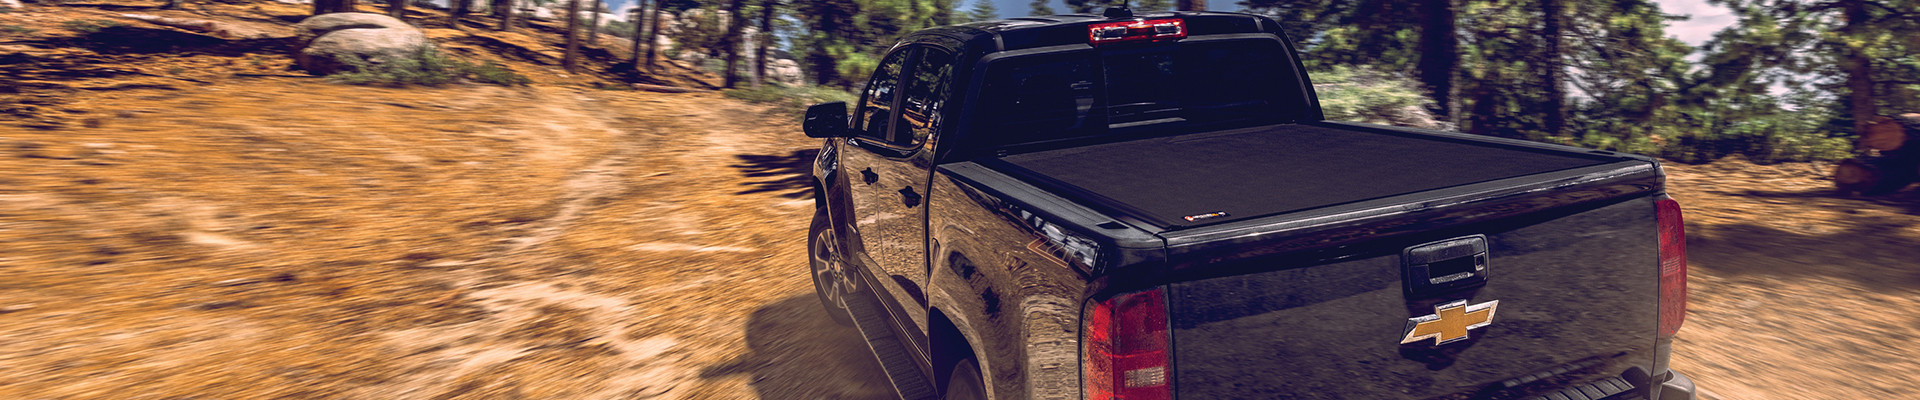 TONNEAU COVERS & BED ACCESSORIES